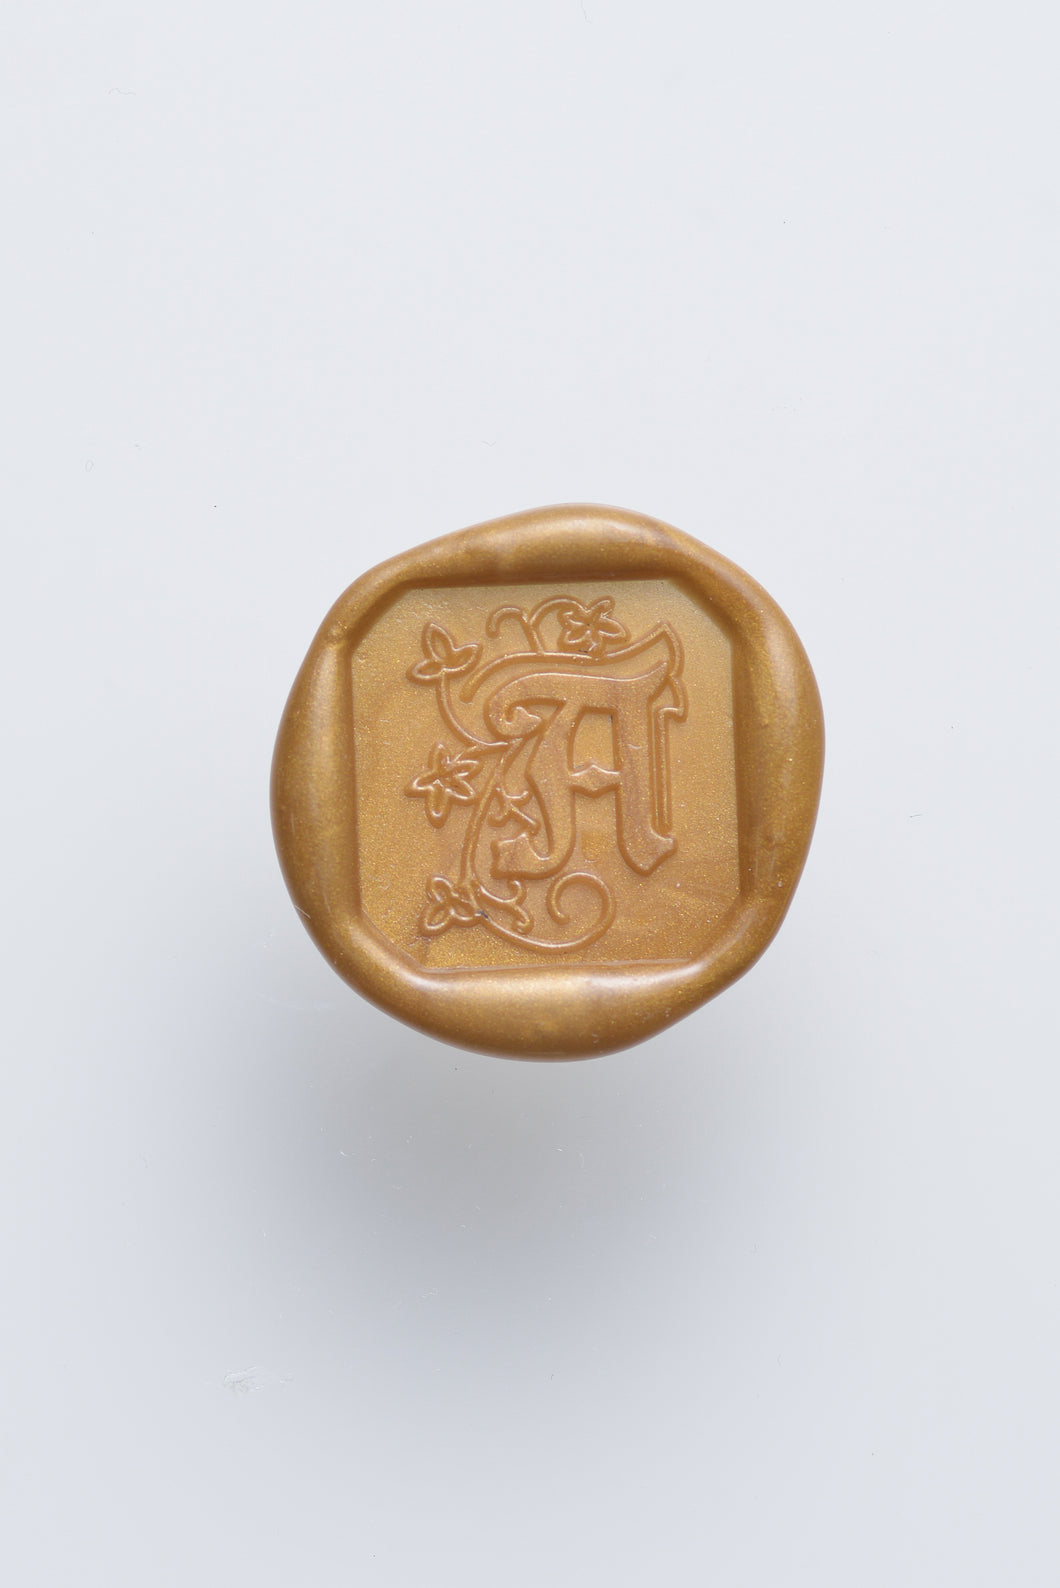 Herbin Illuminated Letter Wax Seal Stamps